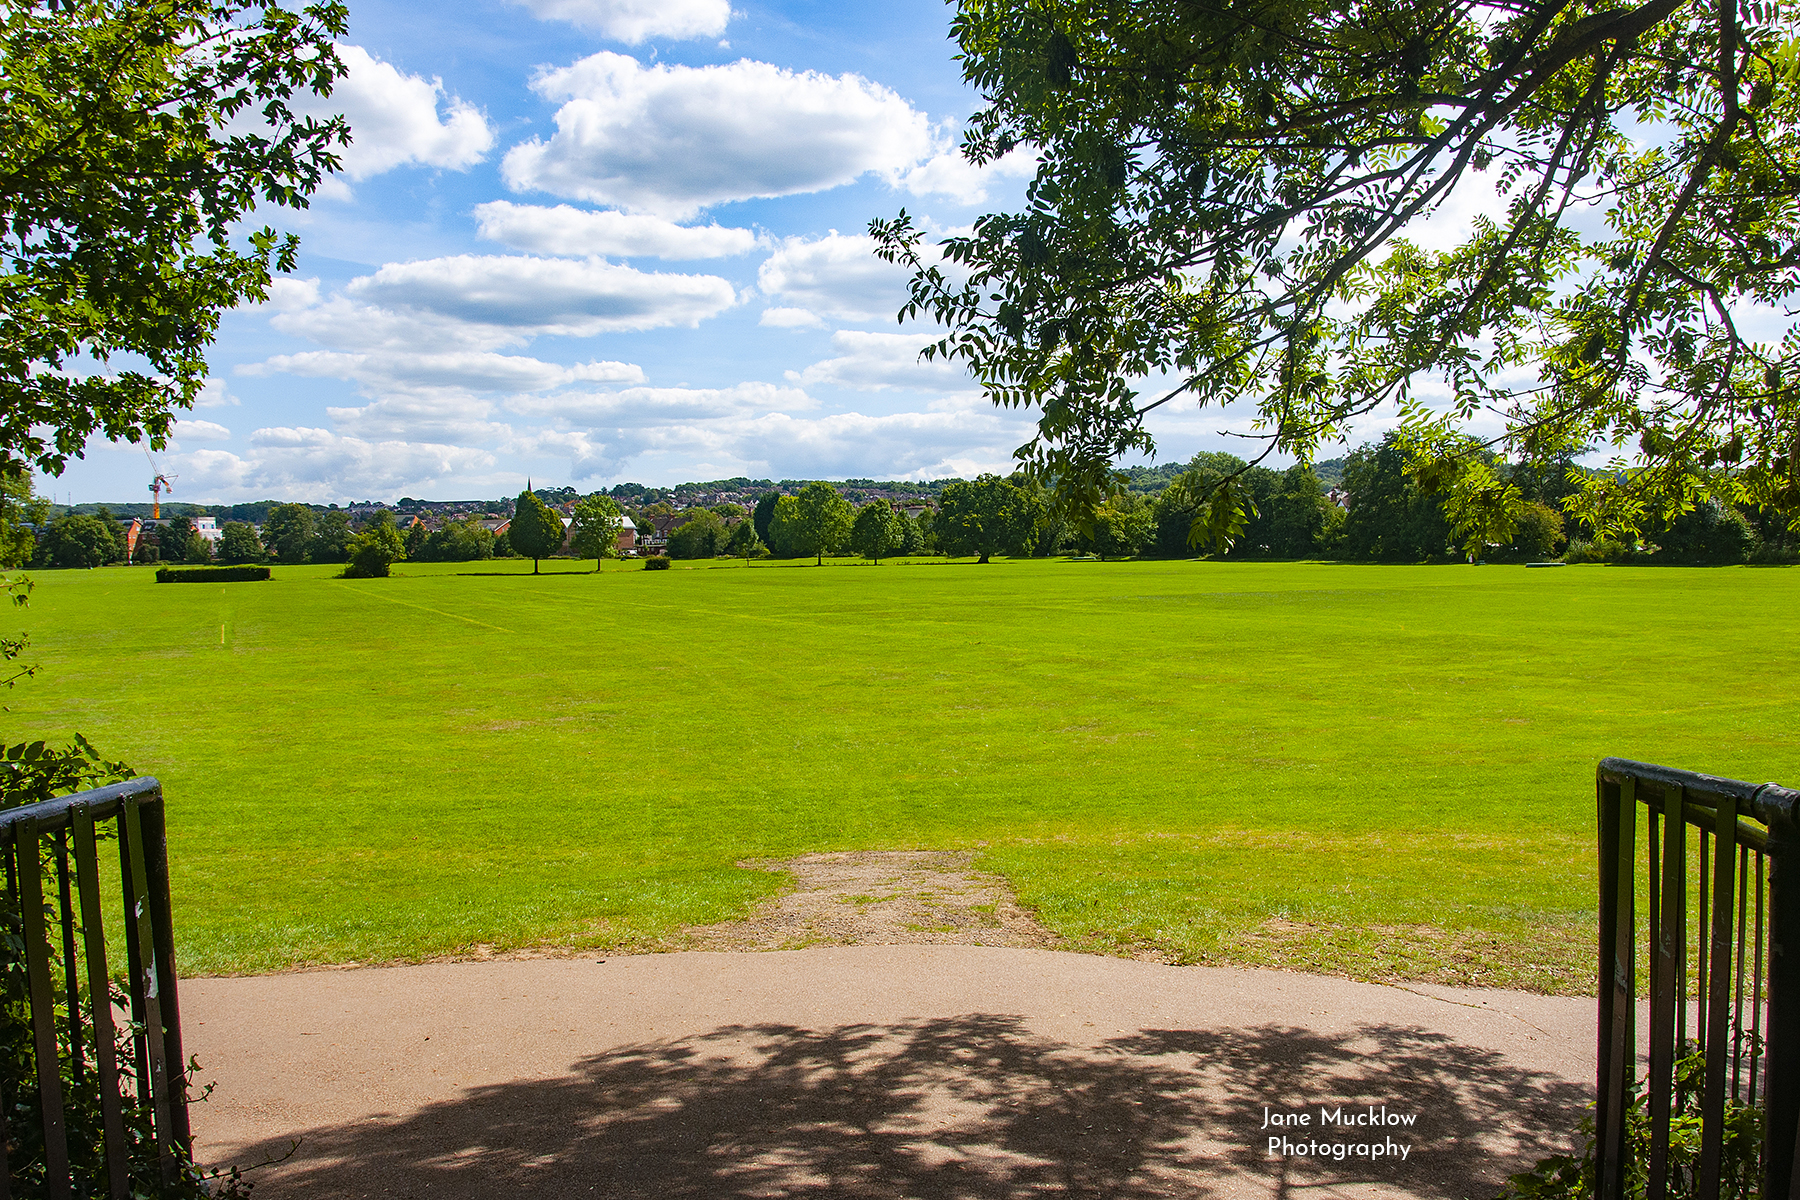 Photo by Jane Mucklow of an early summer view across Tonbridge Park